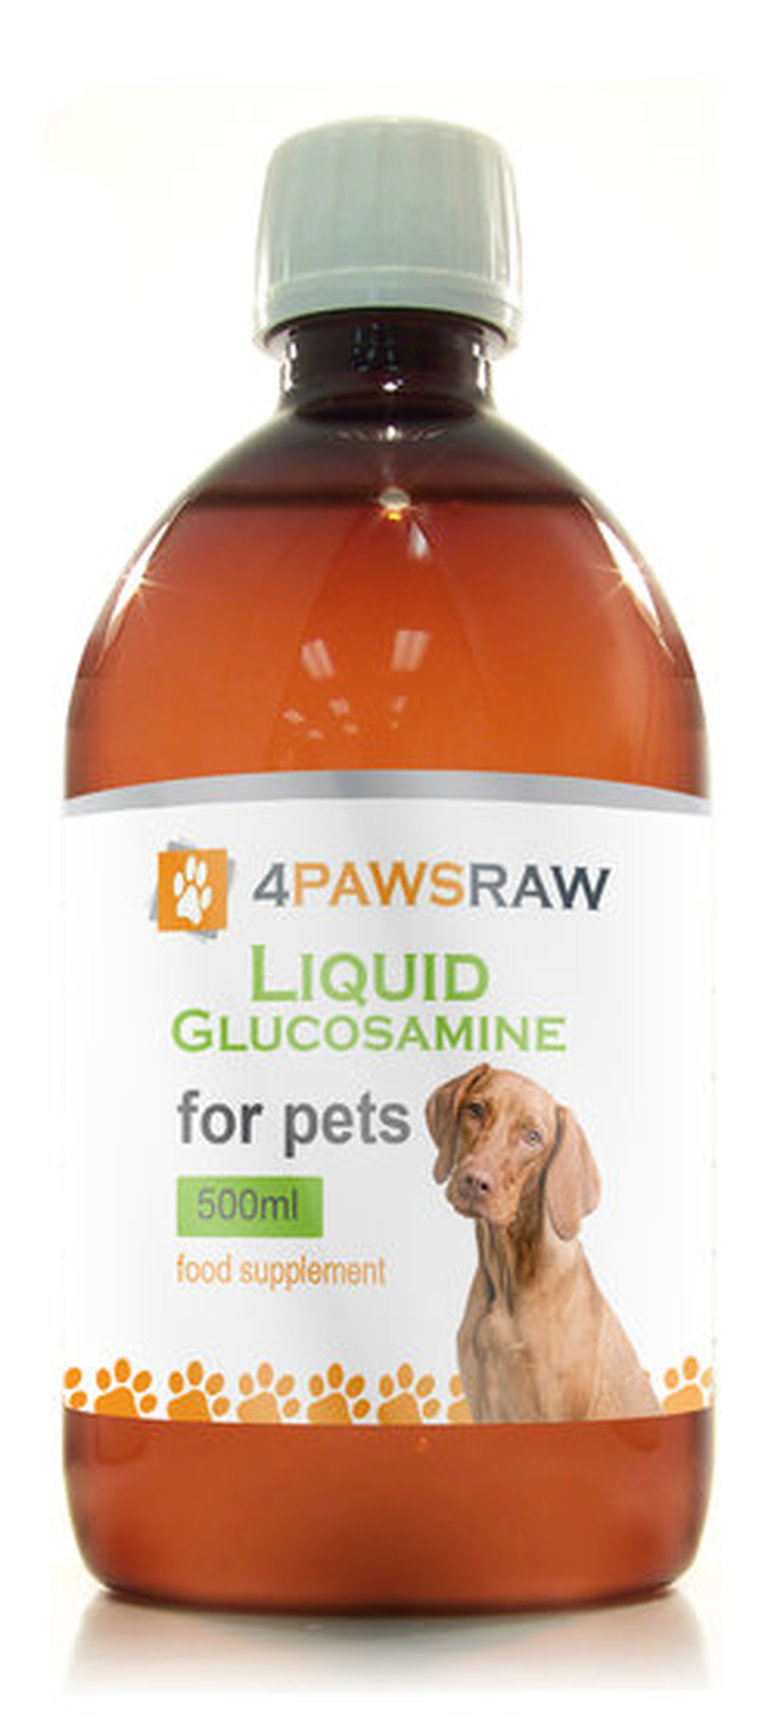 Liquid Glucosamine for Dogs and Cats with Arthritis Joint Pain. LARGE Bottle 500ml